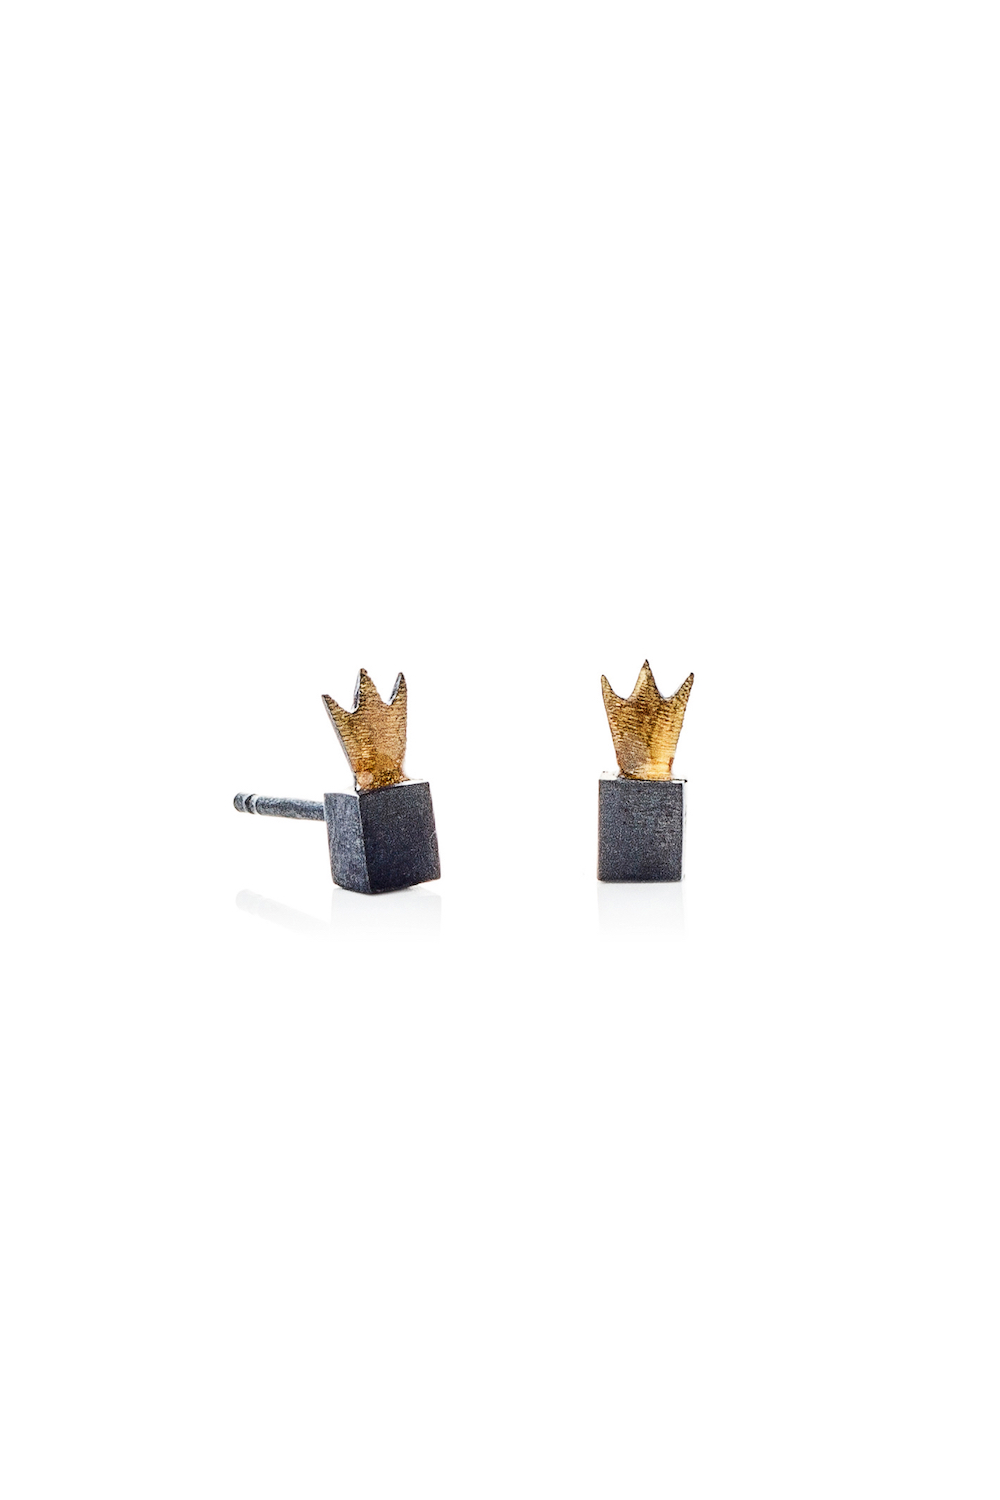 Kiss the Frog oxidised CROWN CUBES earrings